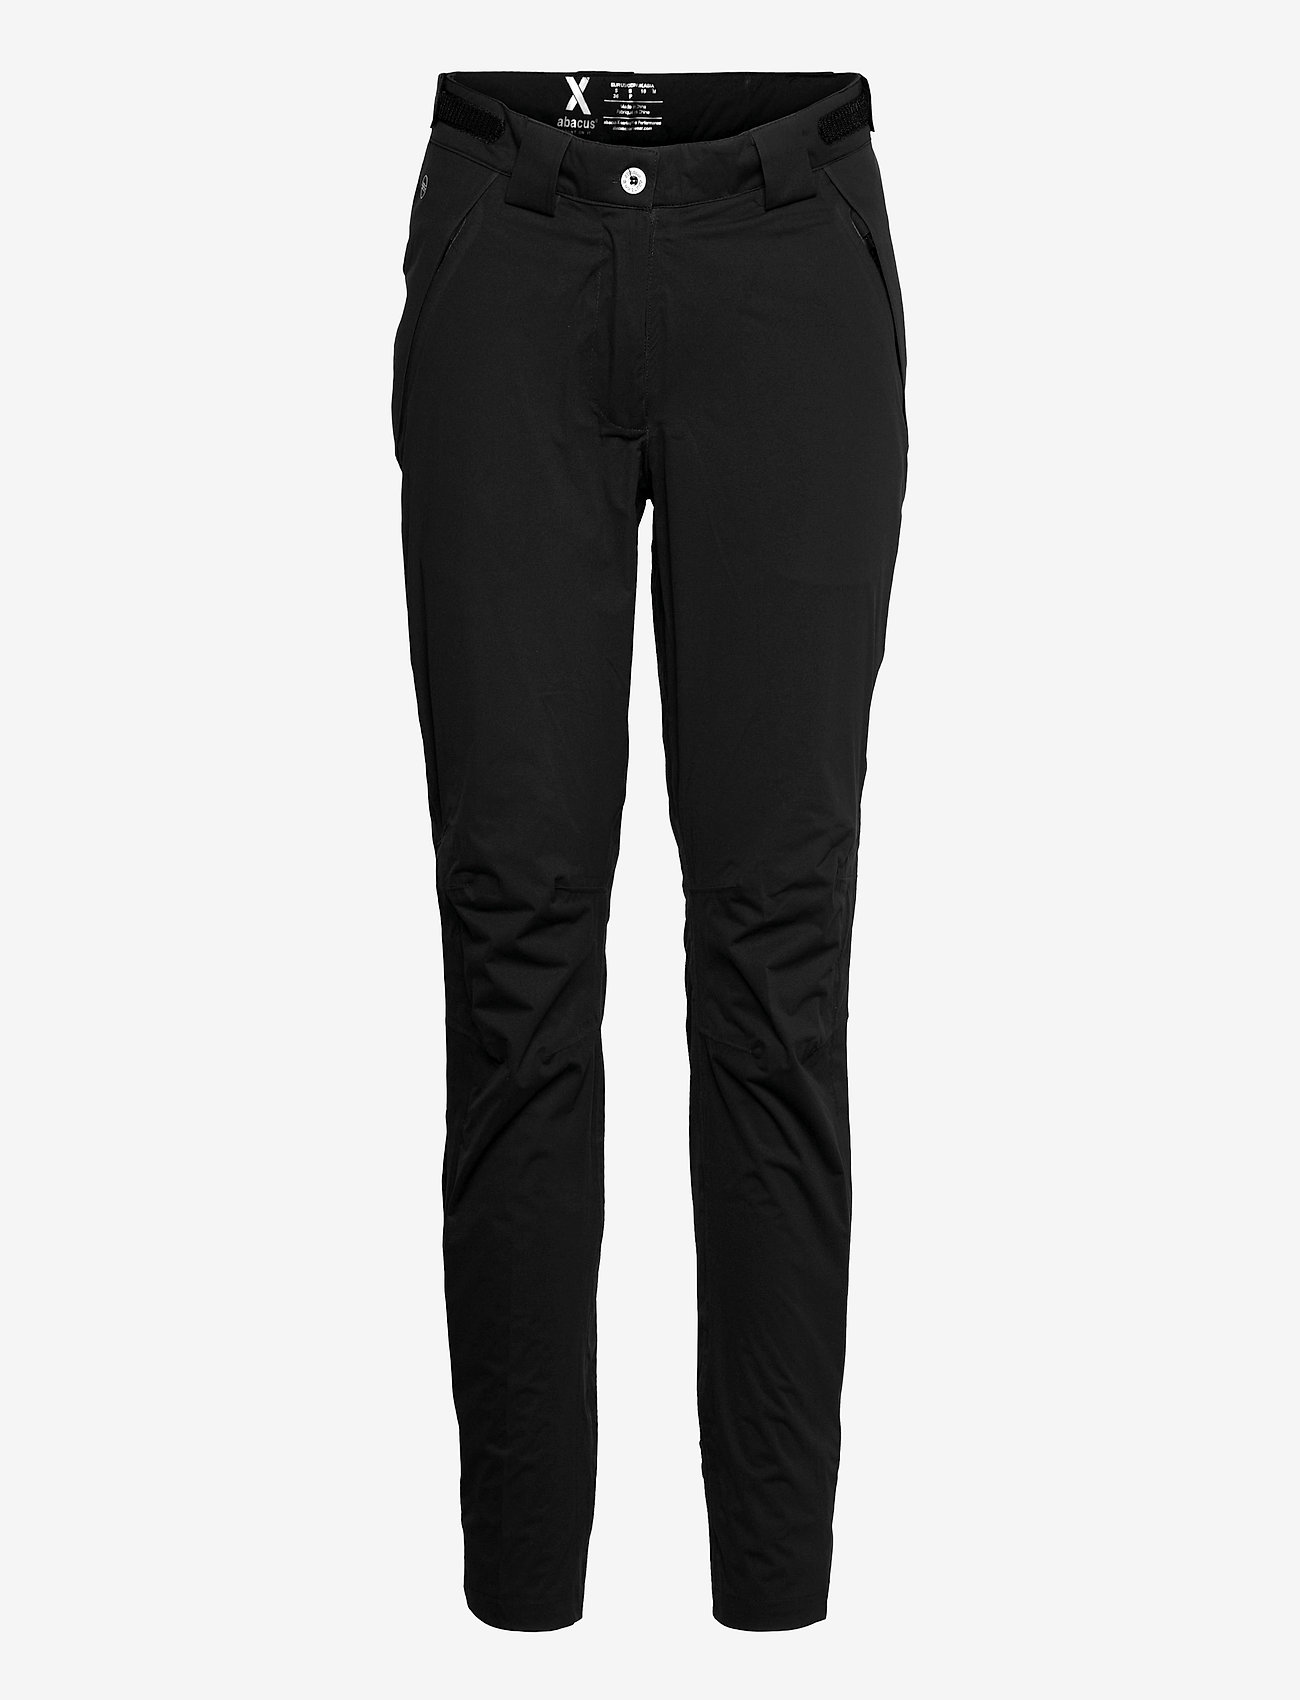 Abacus - Lds Pitch 37.5 raintrousers - golfbroeken - black - 1